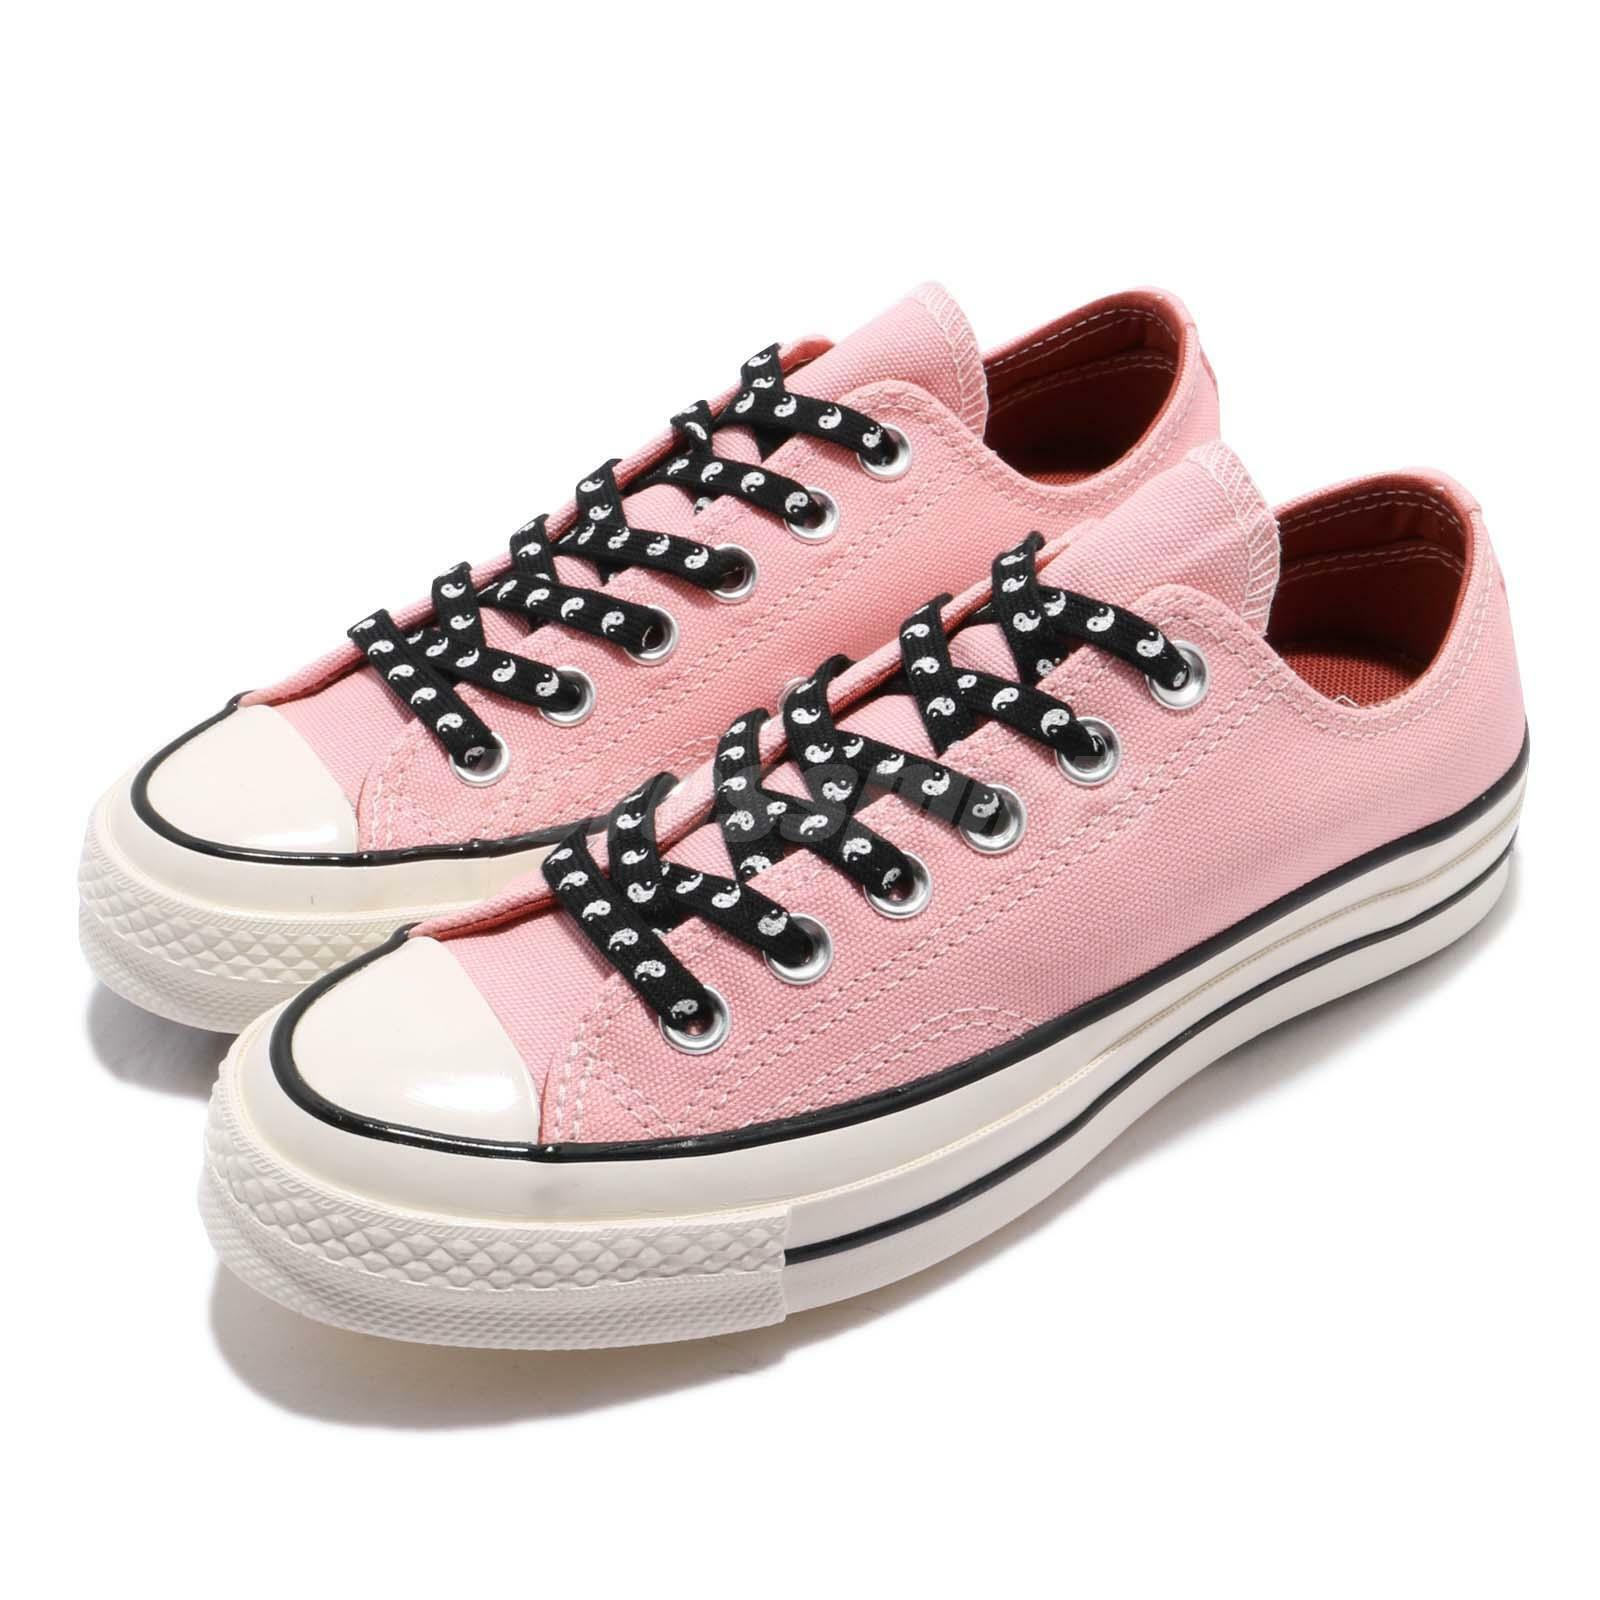 Converse First First First String Chuck Taylor All Star 70 OX 1970 Uomo donna scarpe Pick 1 c62f0e